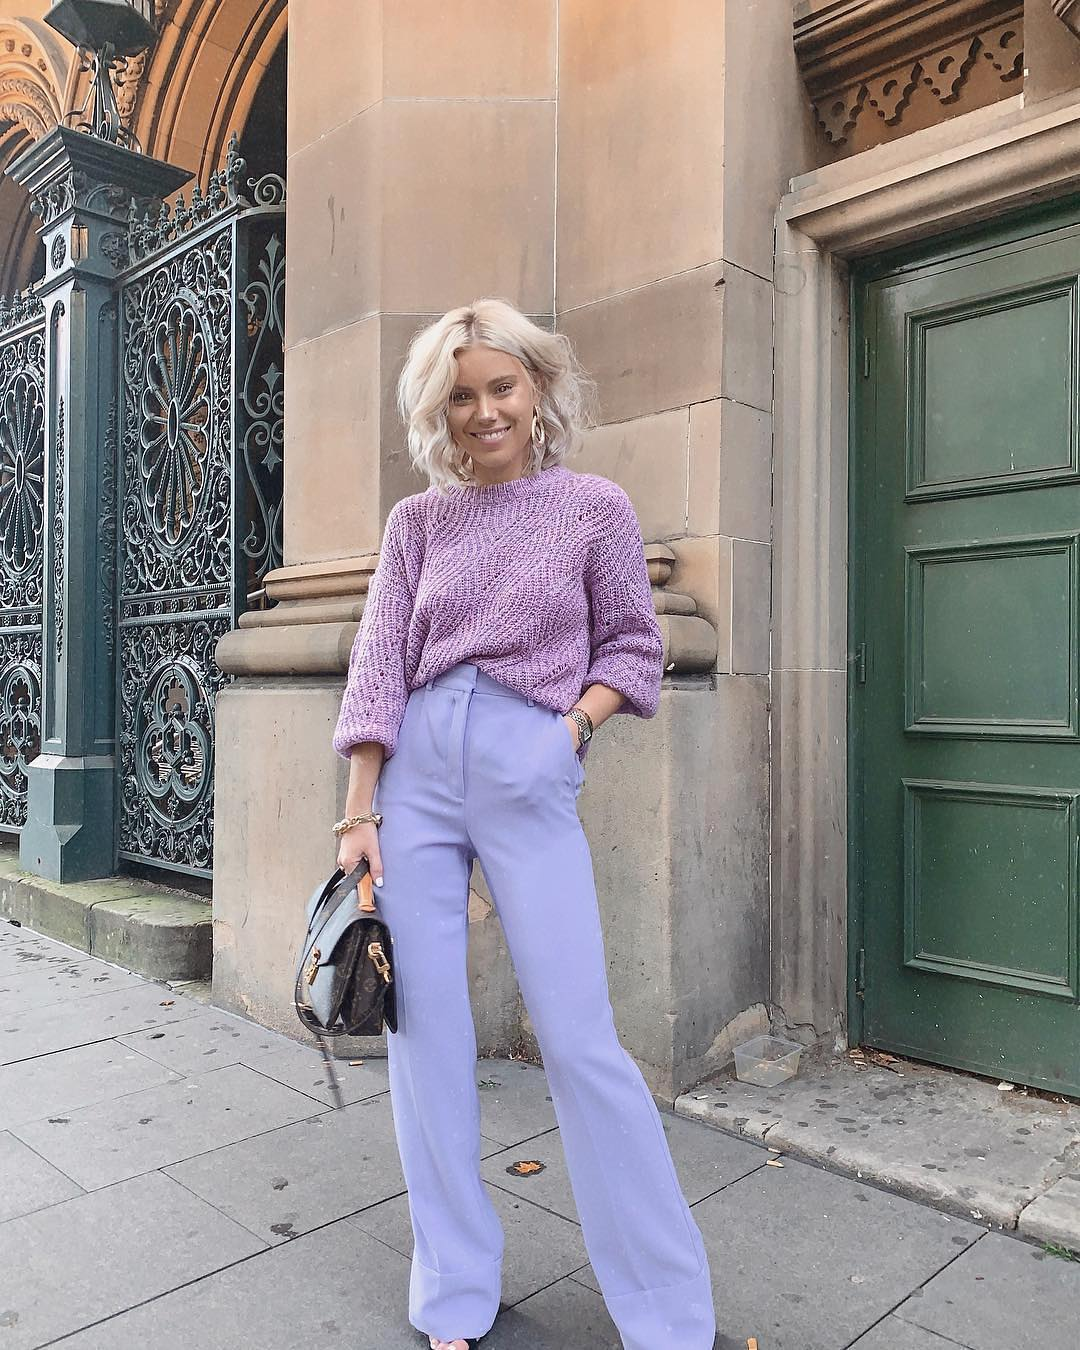 Seventies Are Back: Pastel Sweater And Bootcut Pants 2019